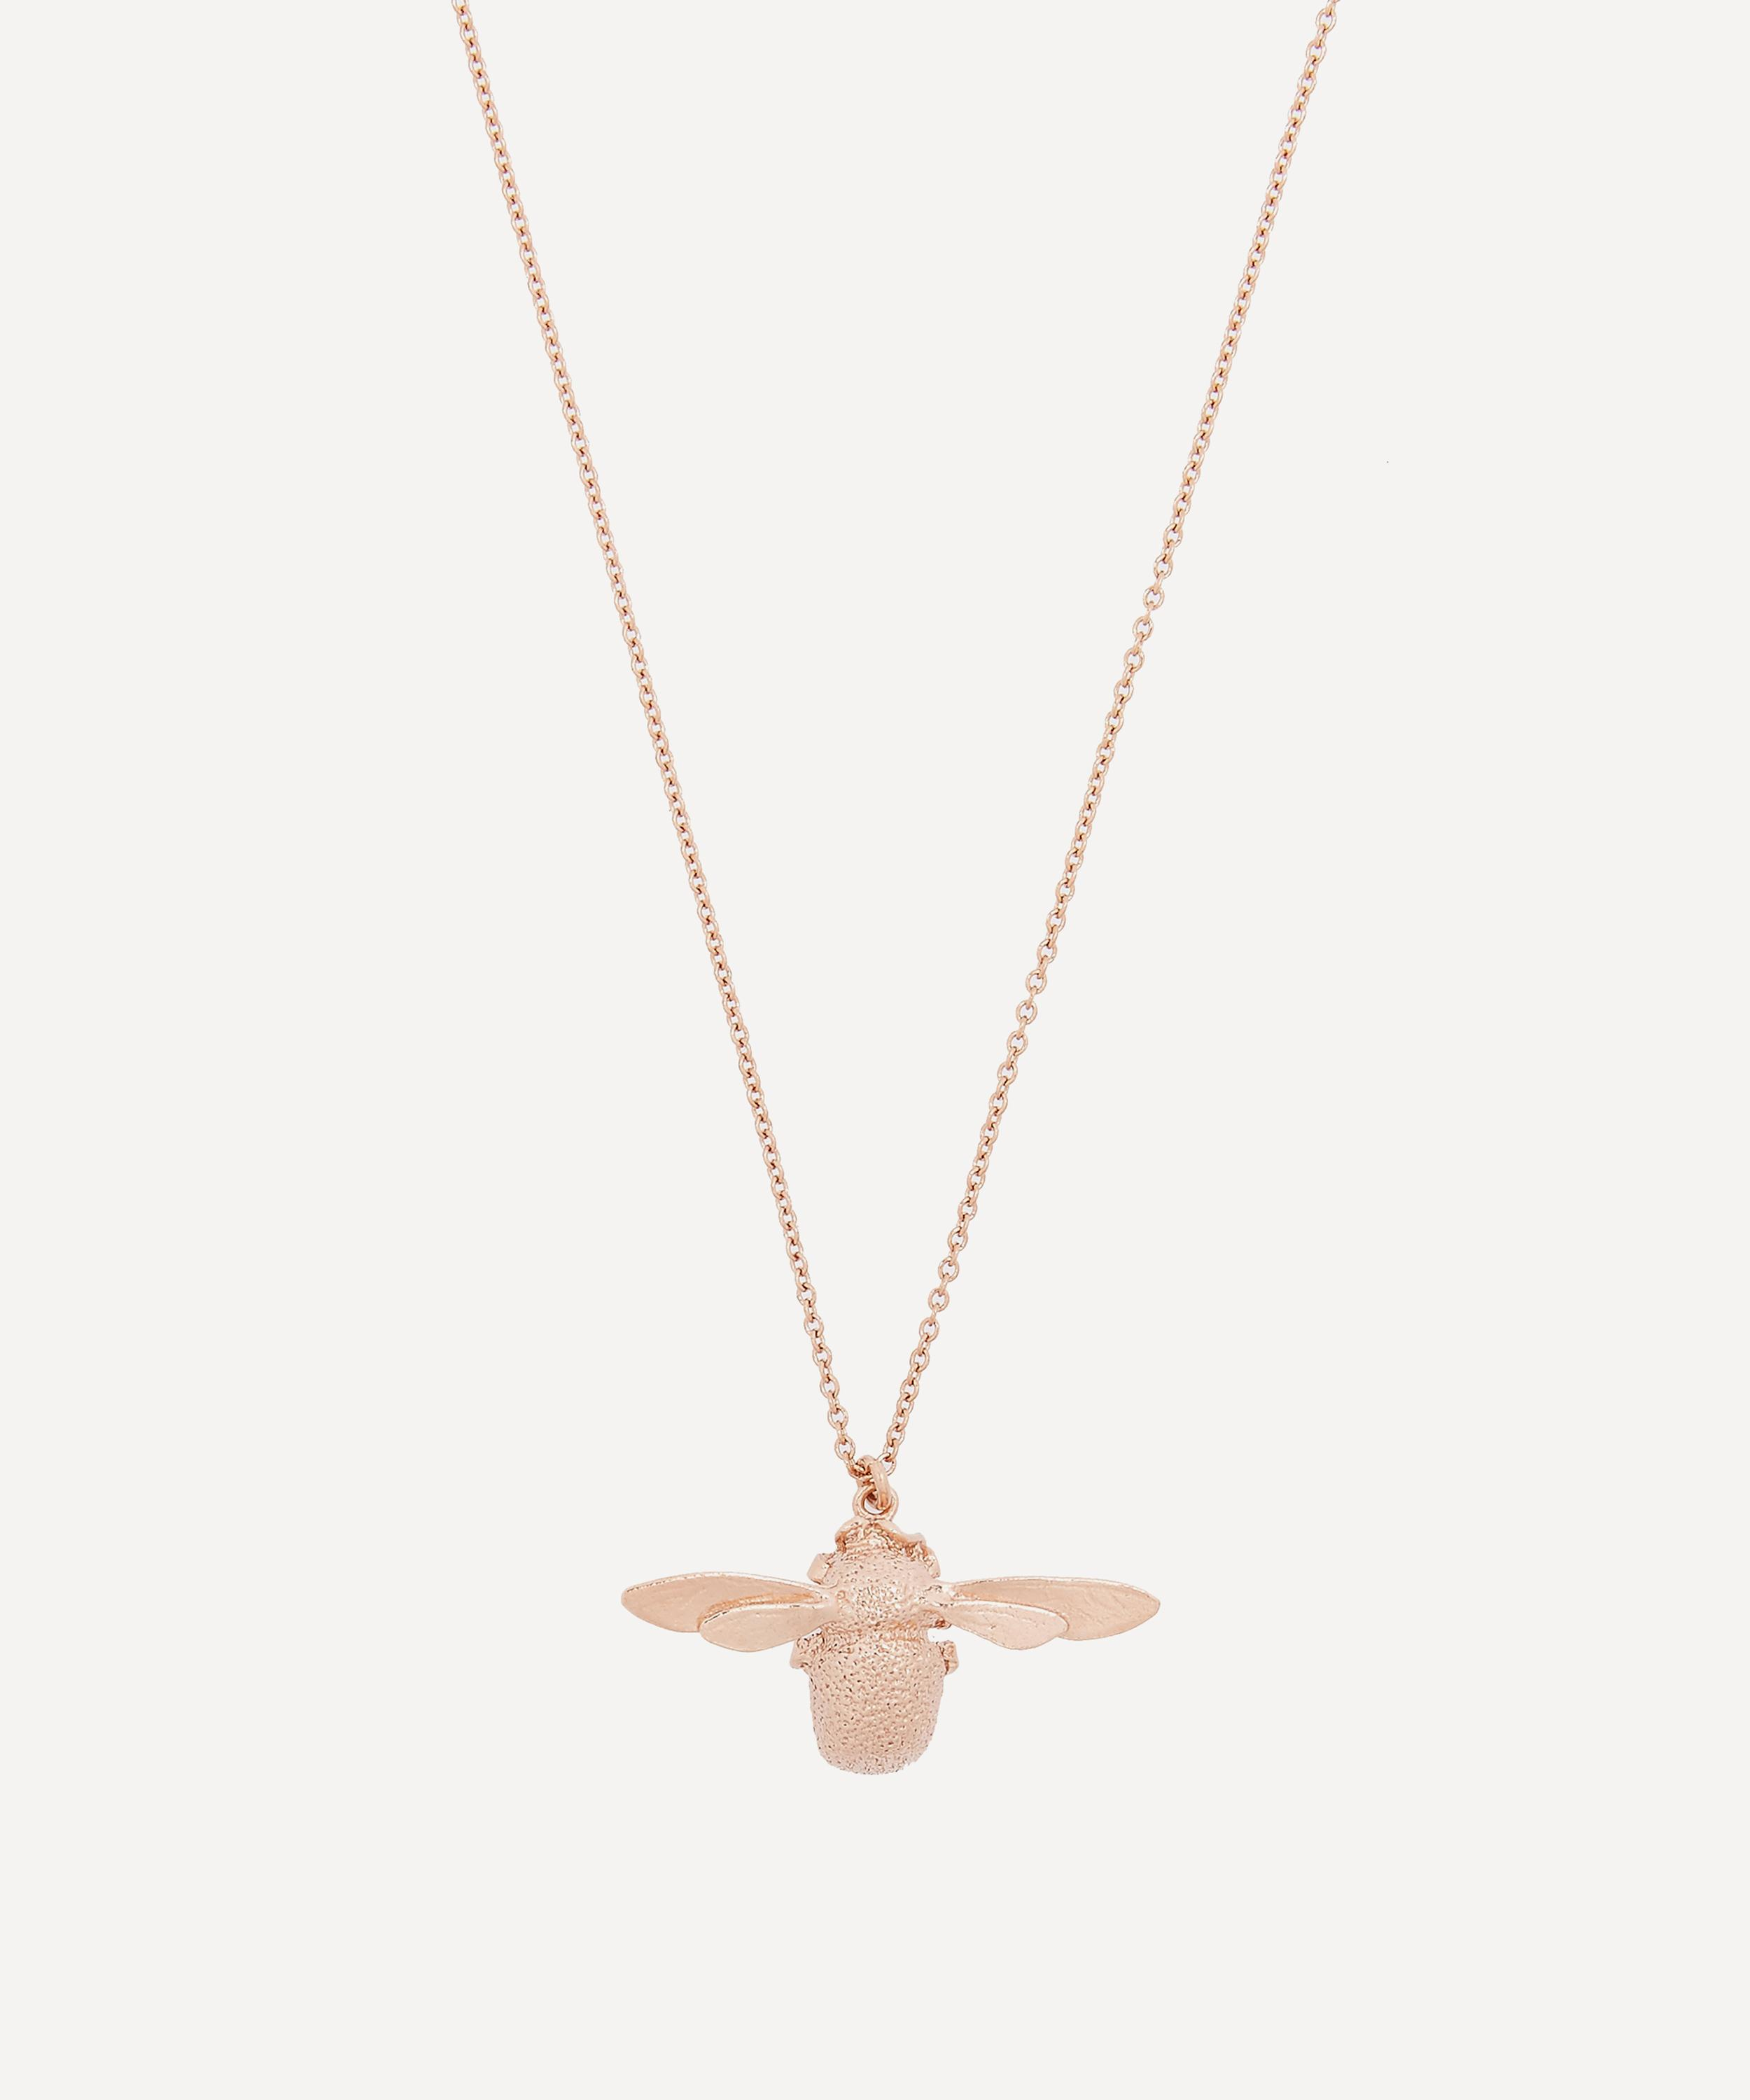 Rose gold vermeil bumblebee necklace liberty london rose gold vermeil bumblebee necklace aloadofball Gallery